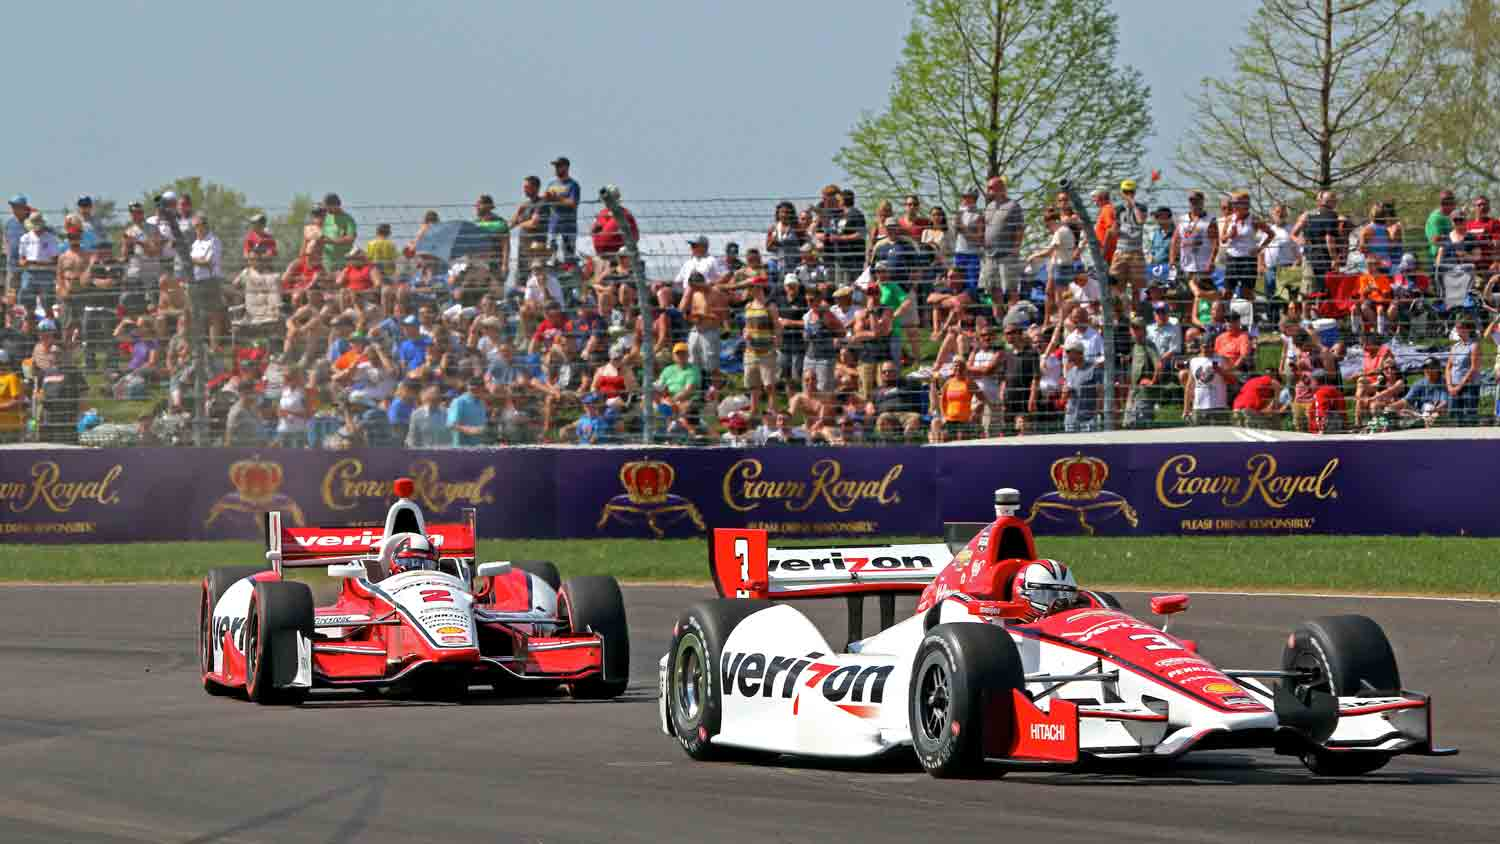 Grand-prix-of-indianapolis-5